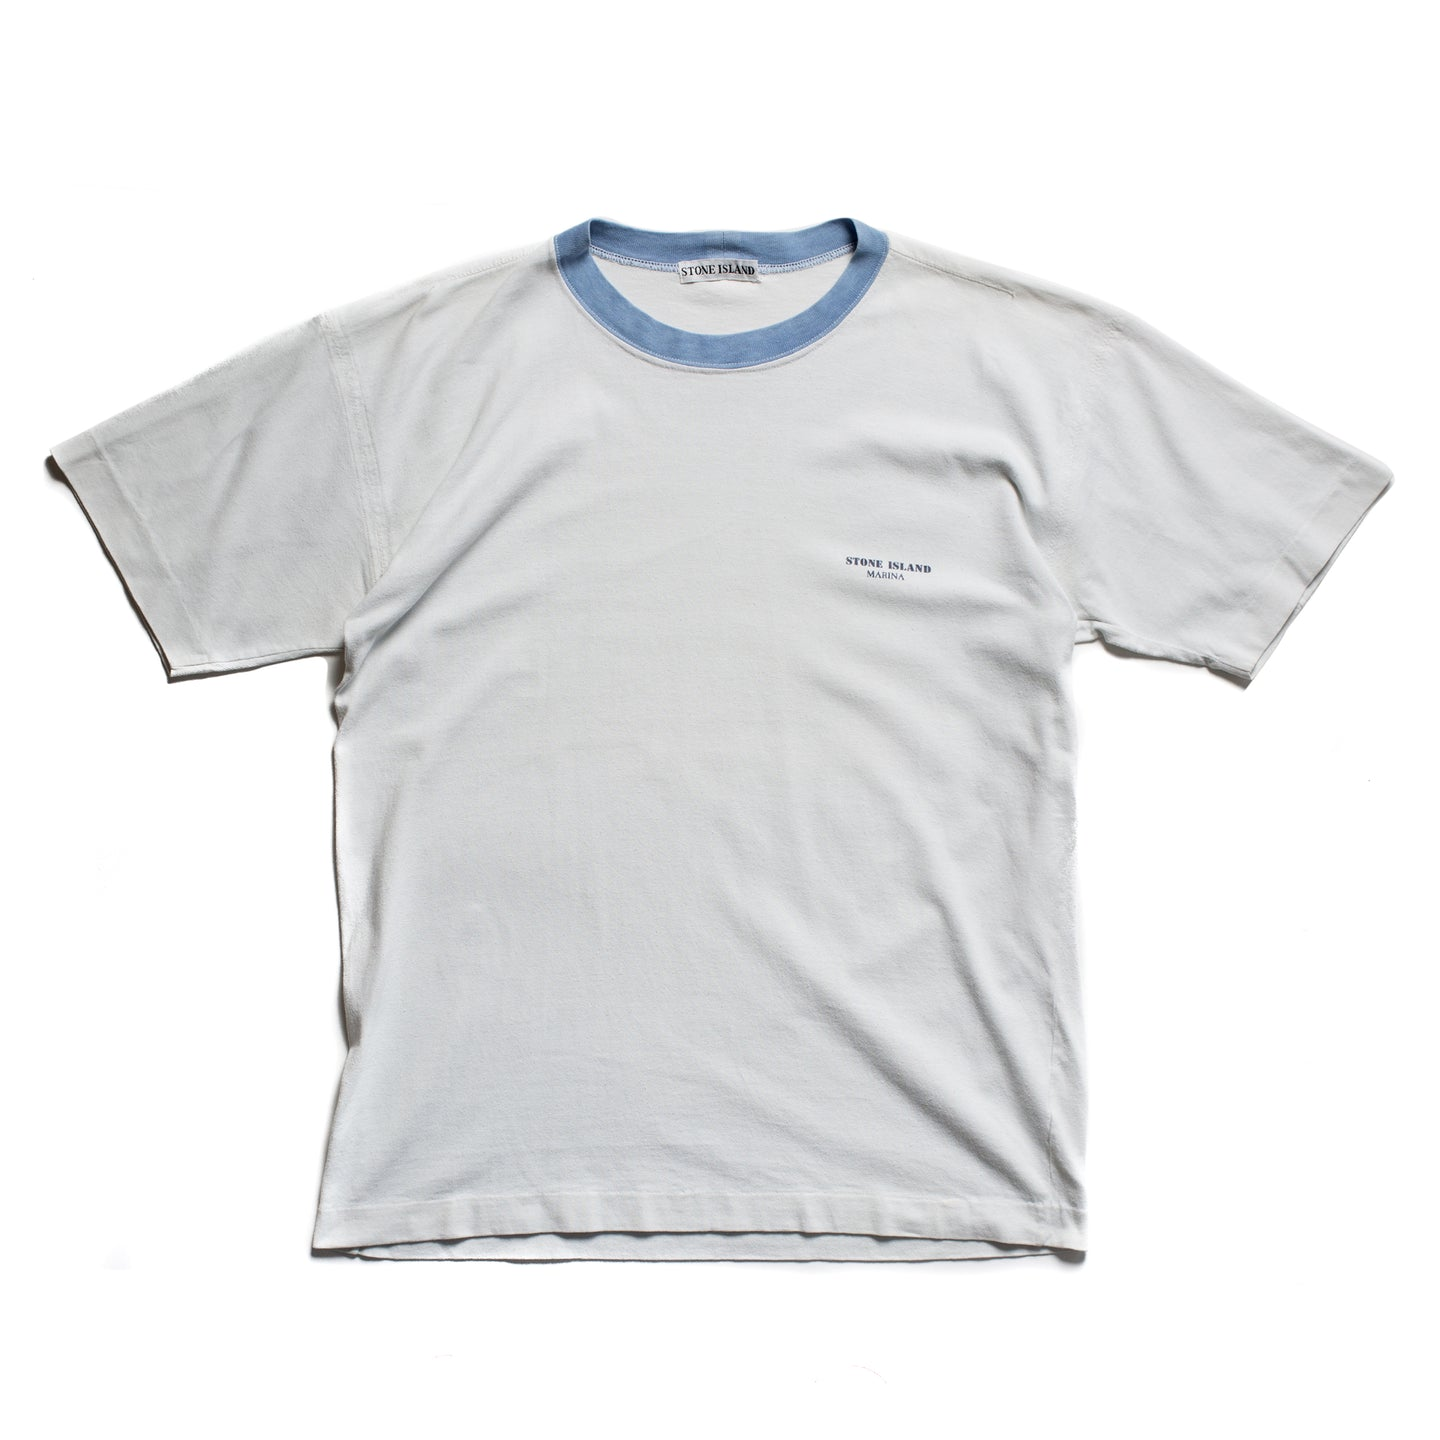 S/S 1989 White Baby Blue Collar Marina Spellout T-Shirt